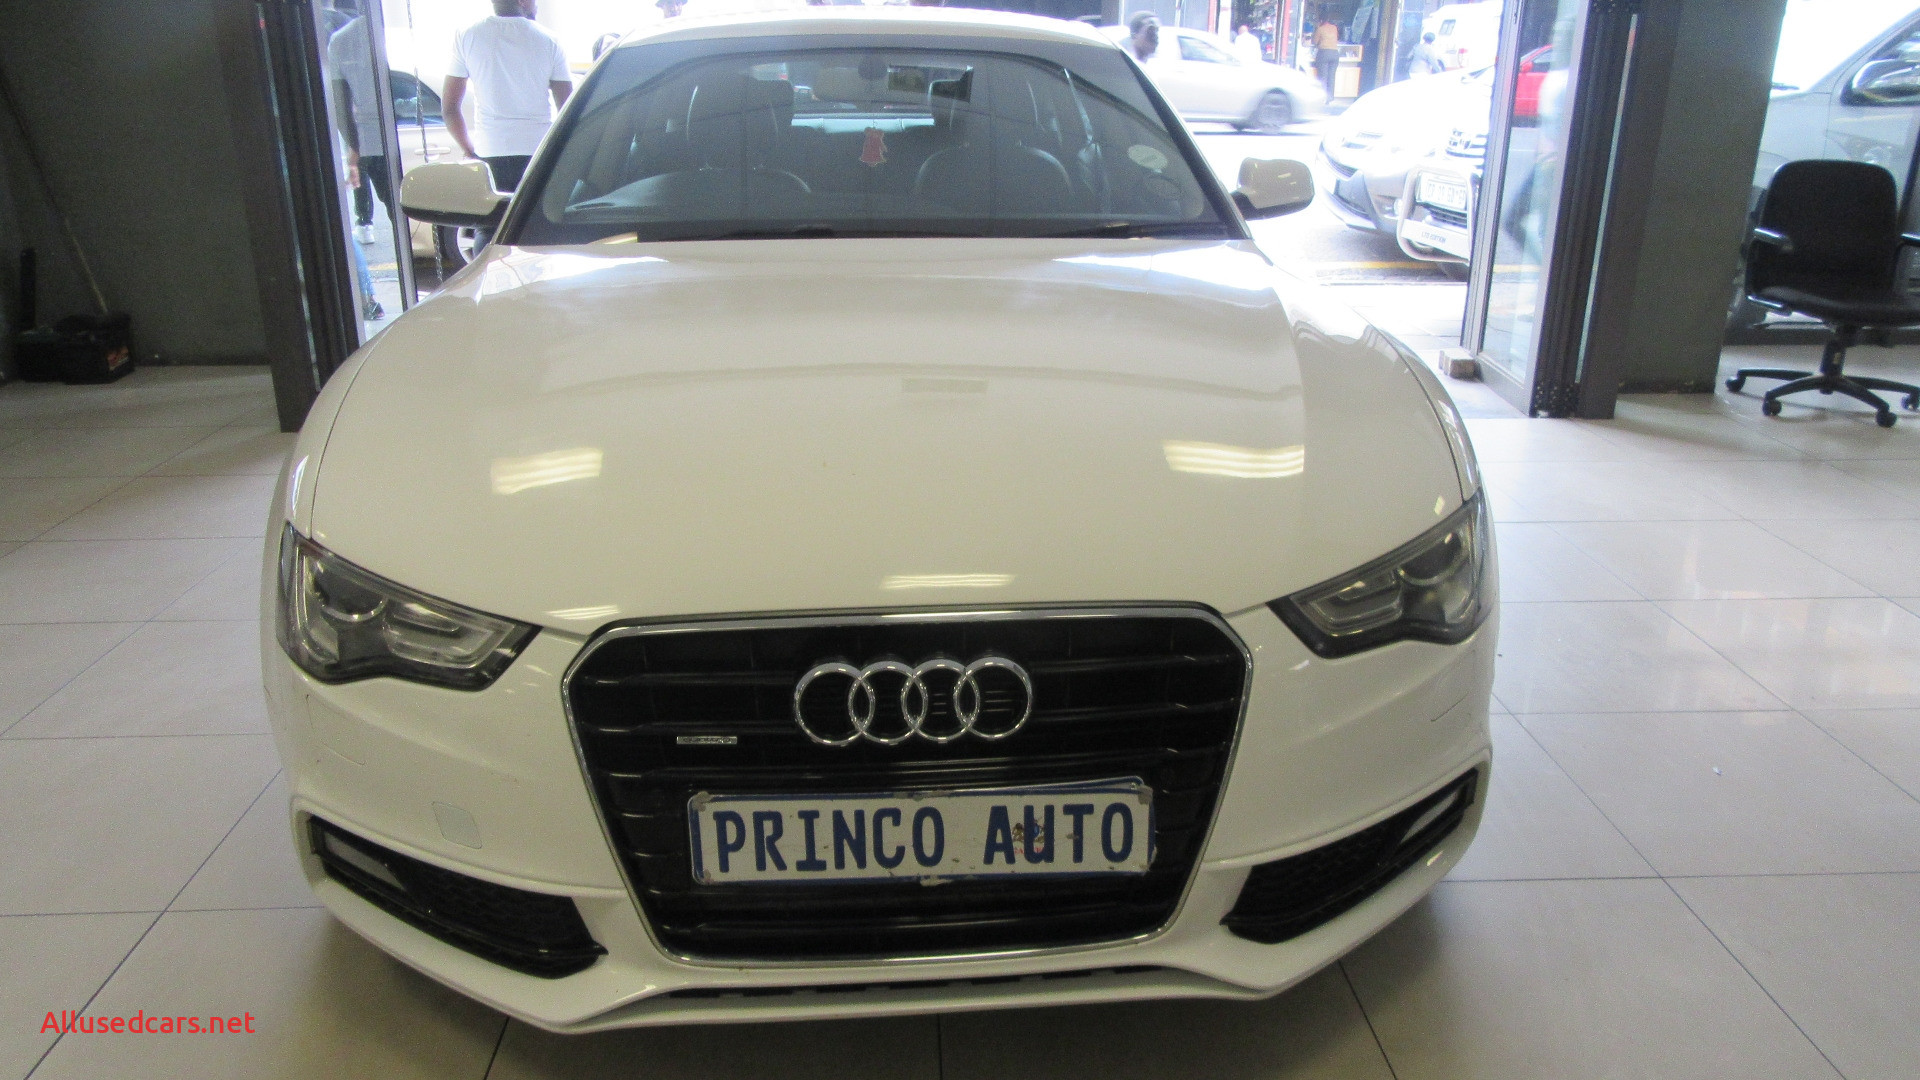 Audi A4 2012 Inspirational Audi A5 for Sale In Gauteng